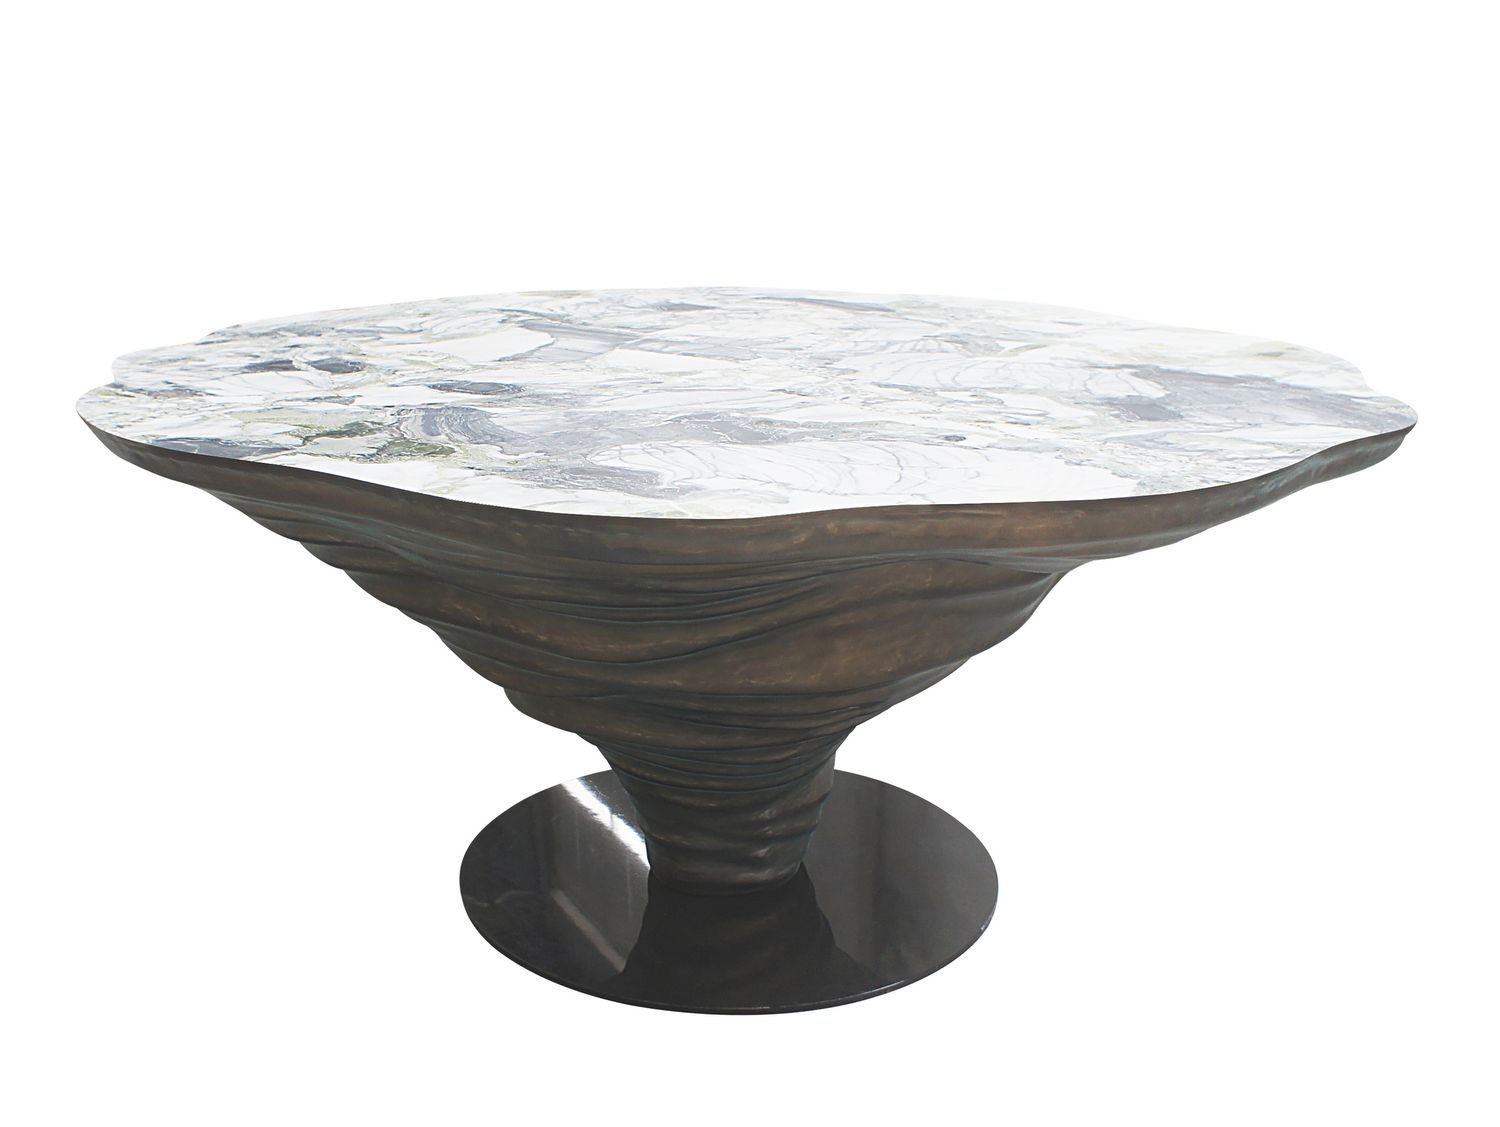 Download The Catalogue And Request Prices Of Kenya K1380 By Karpa Round Marble Table Round Marble Table Marble Table Table